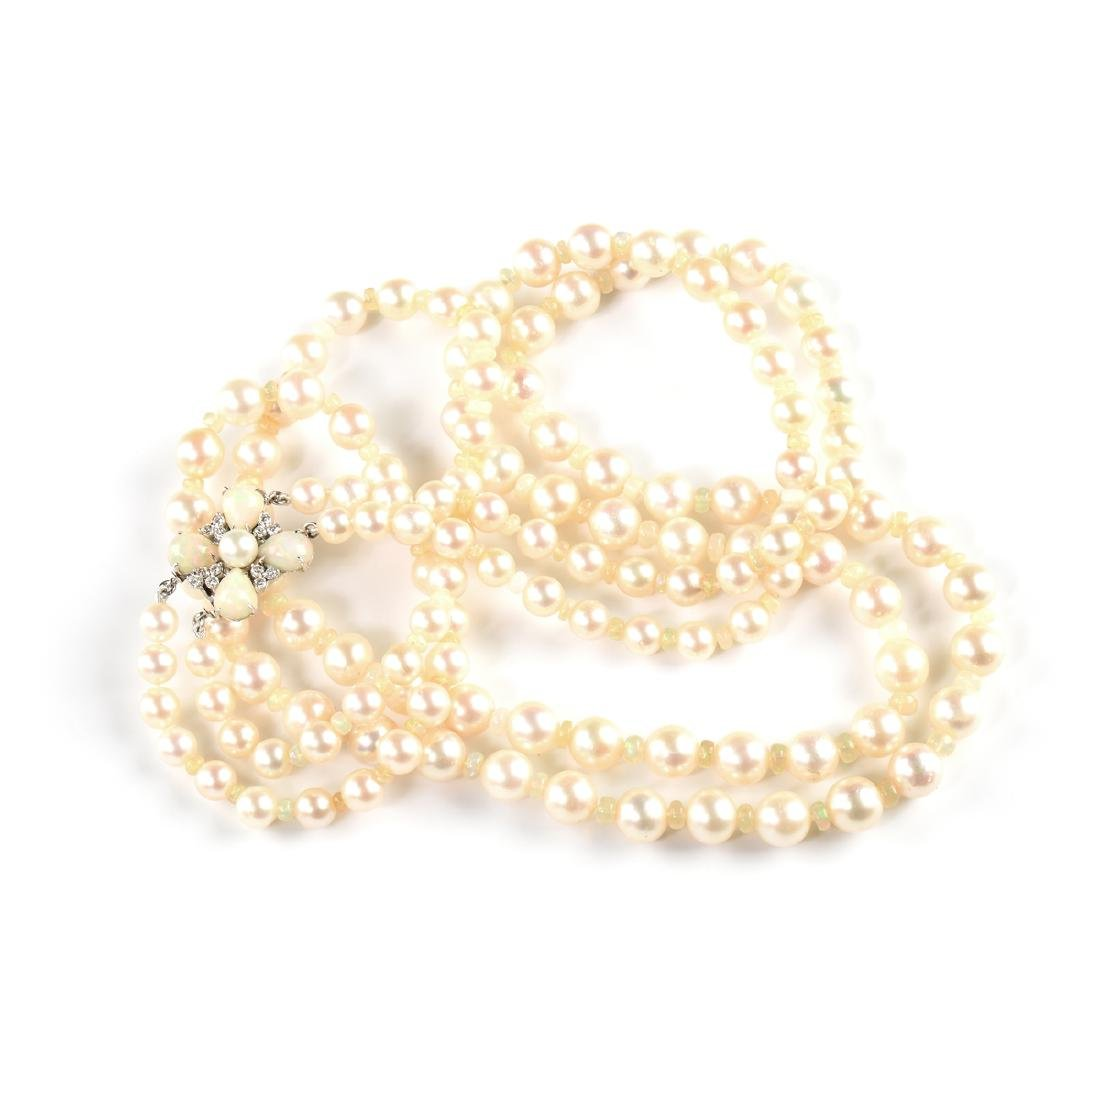 AN AKOYA DOUBLE STRAND PEARL NECKLACE WITH AN 18K WHITE